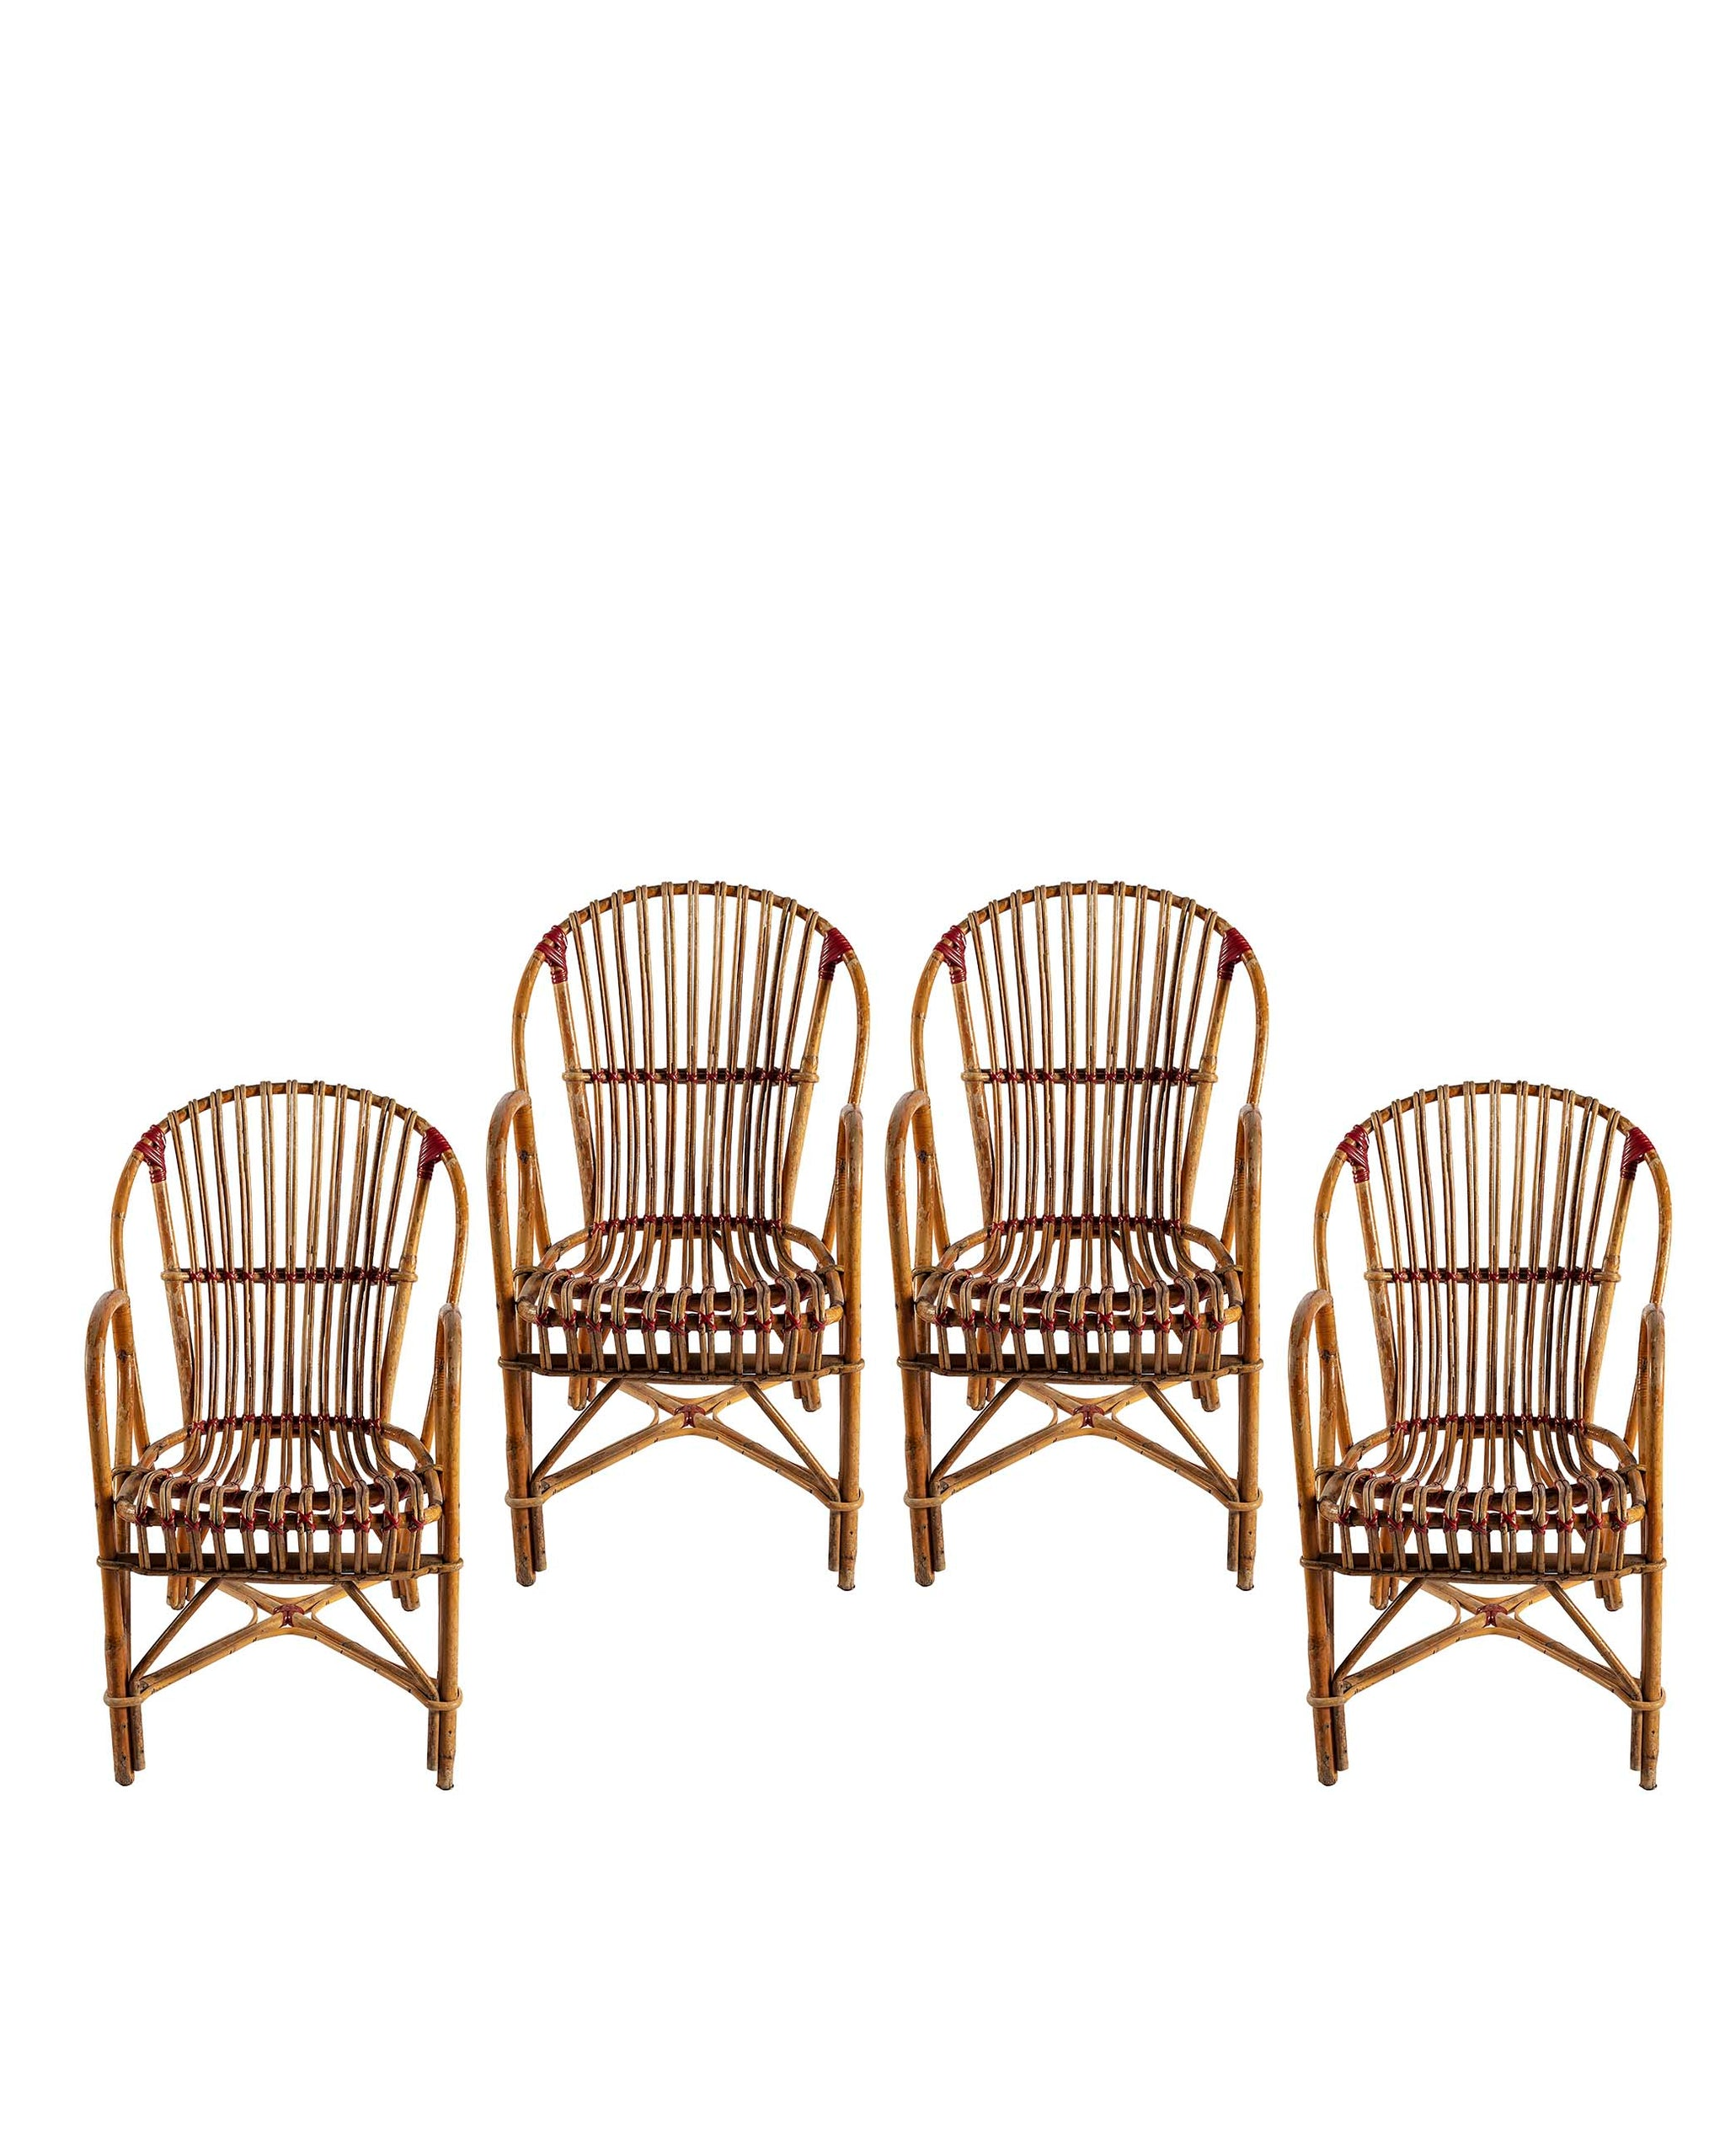 Set of four rattan armchairs. France, 1940s